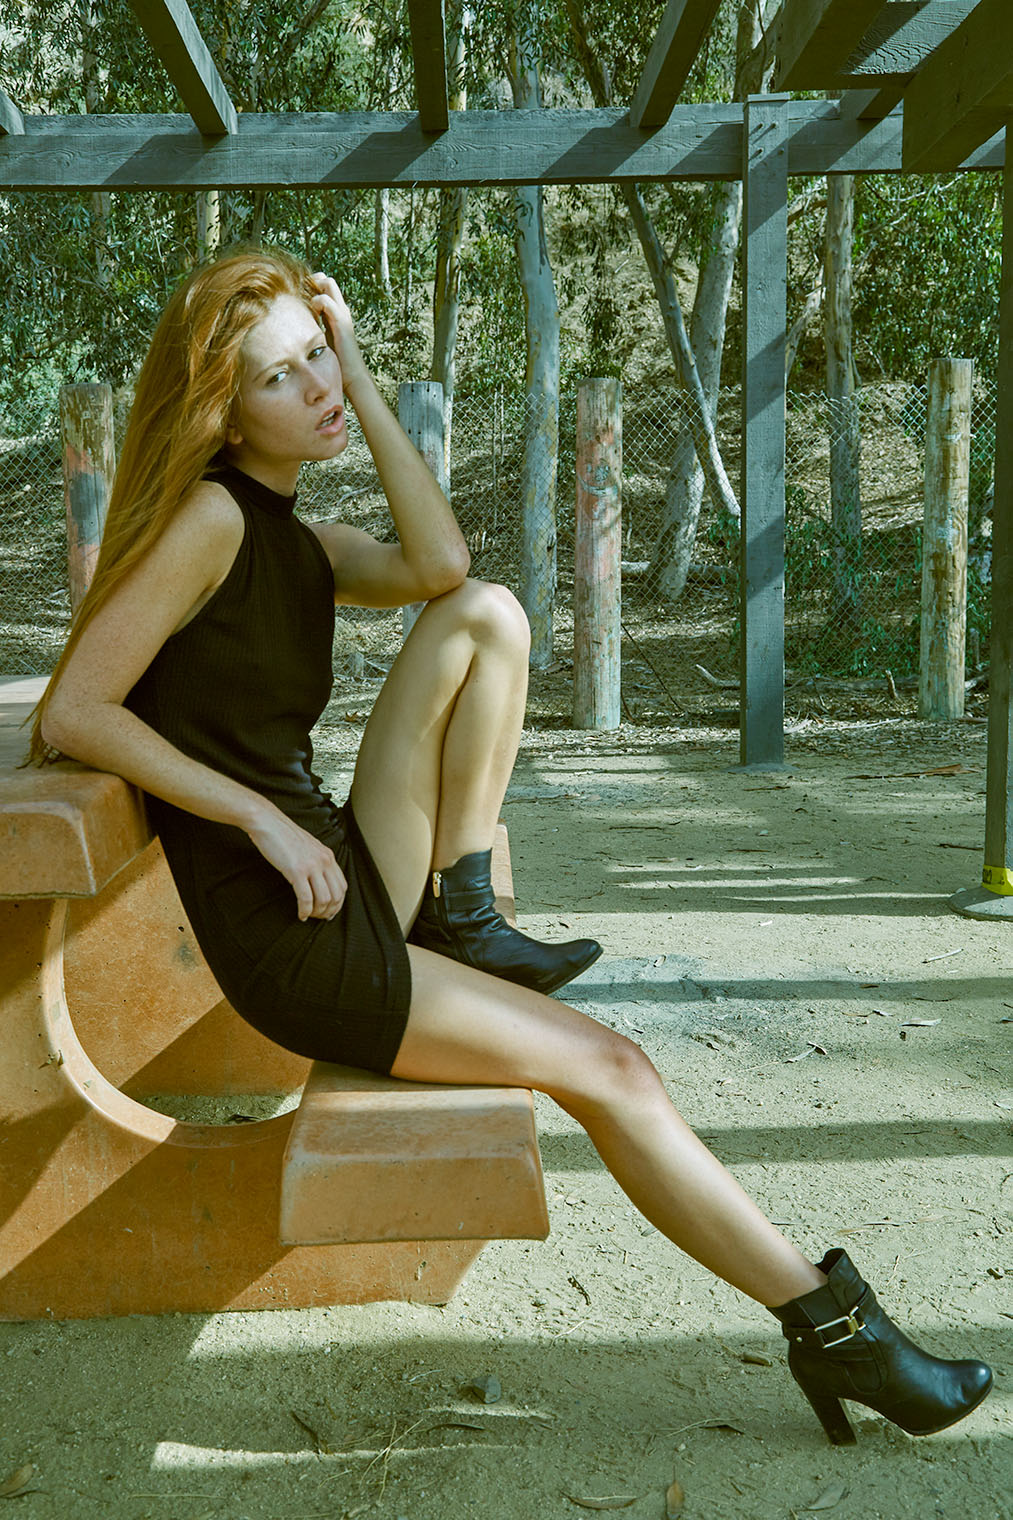 girl experiencing strong emotion sitting on bench in park